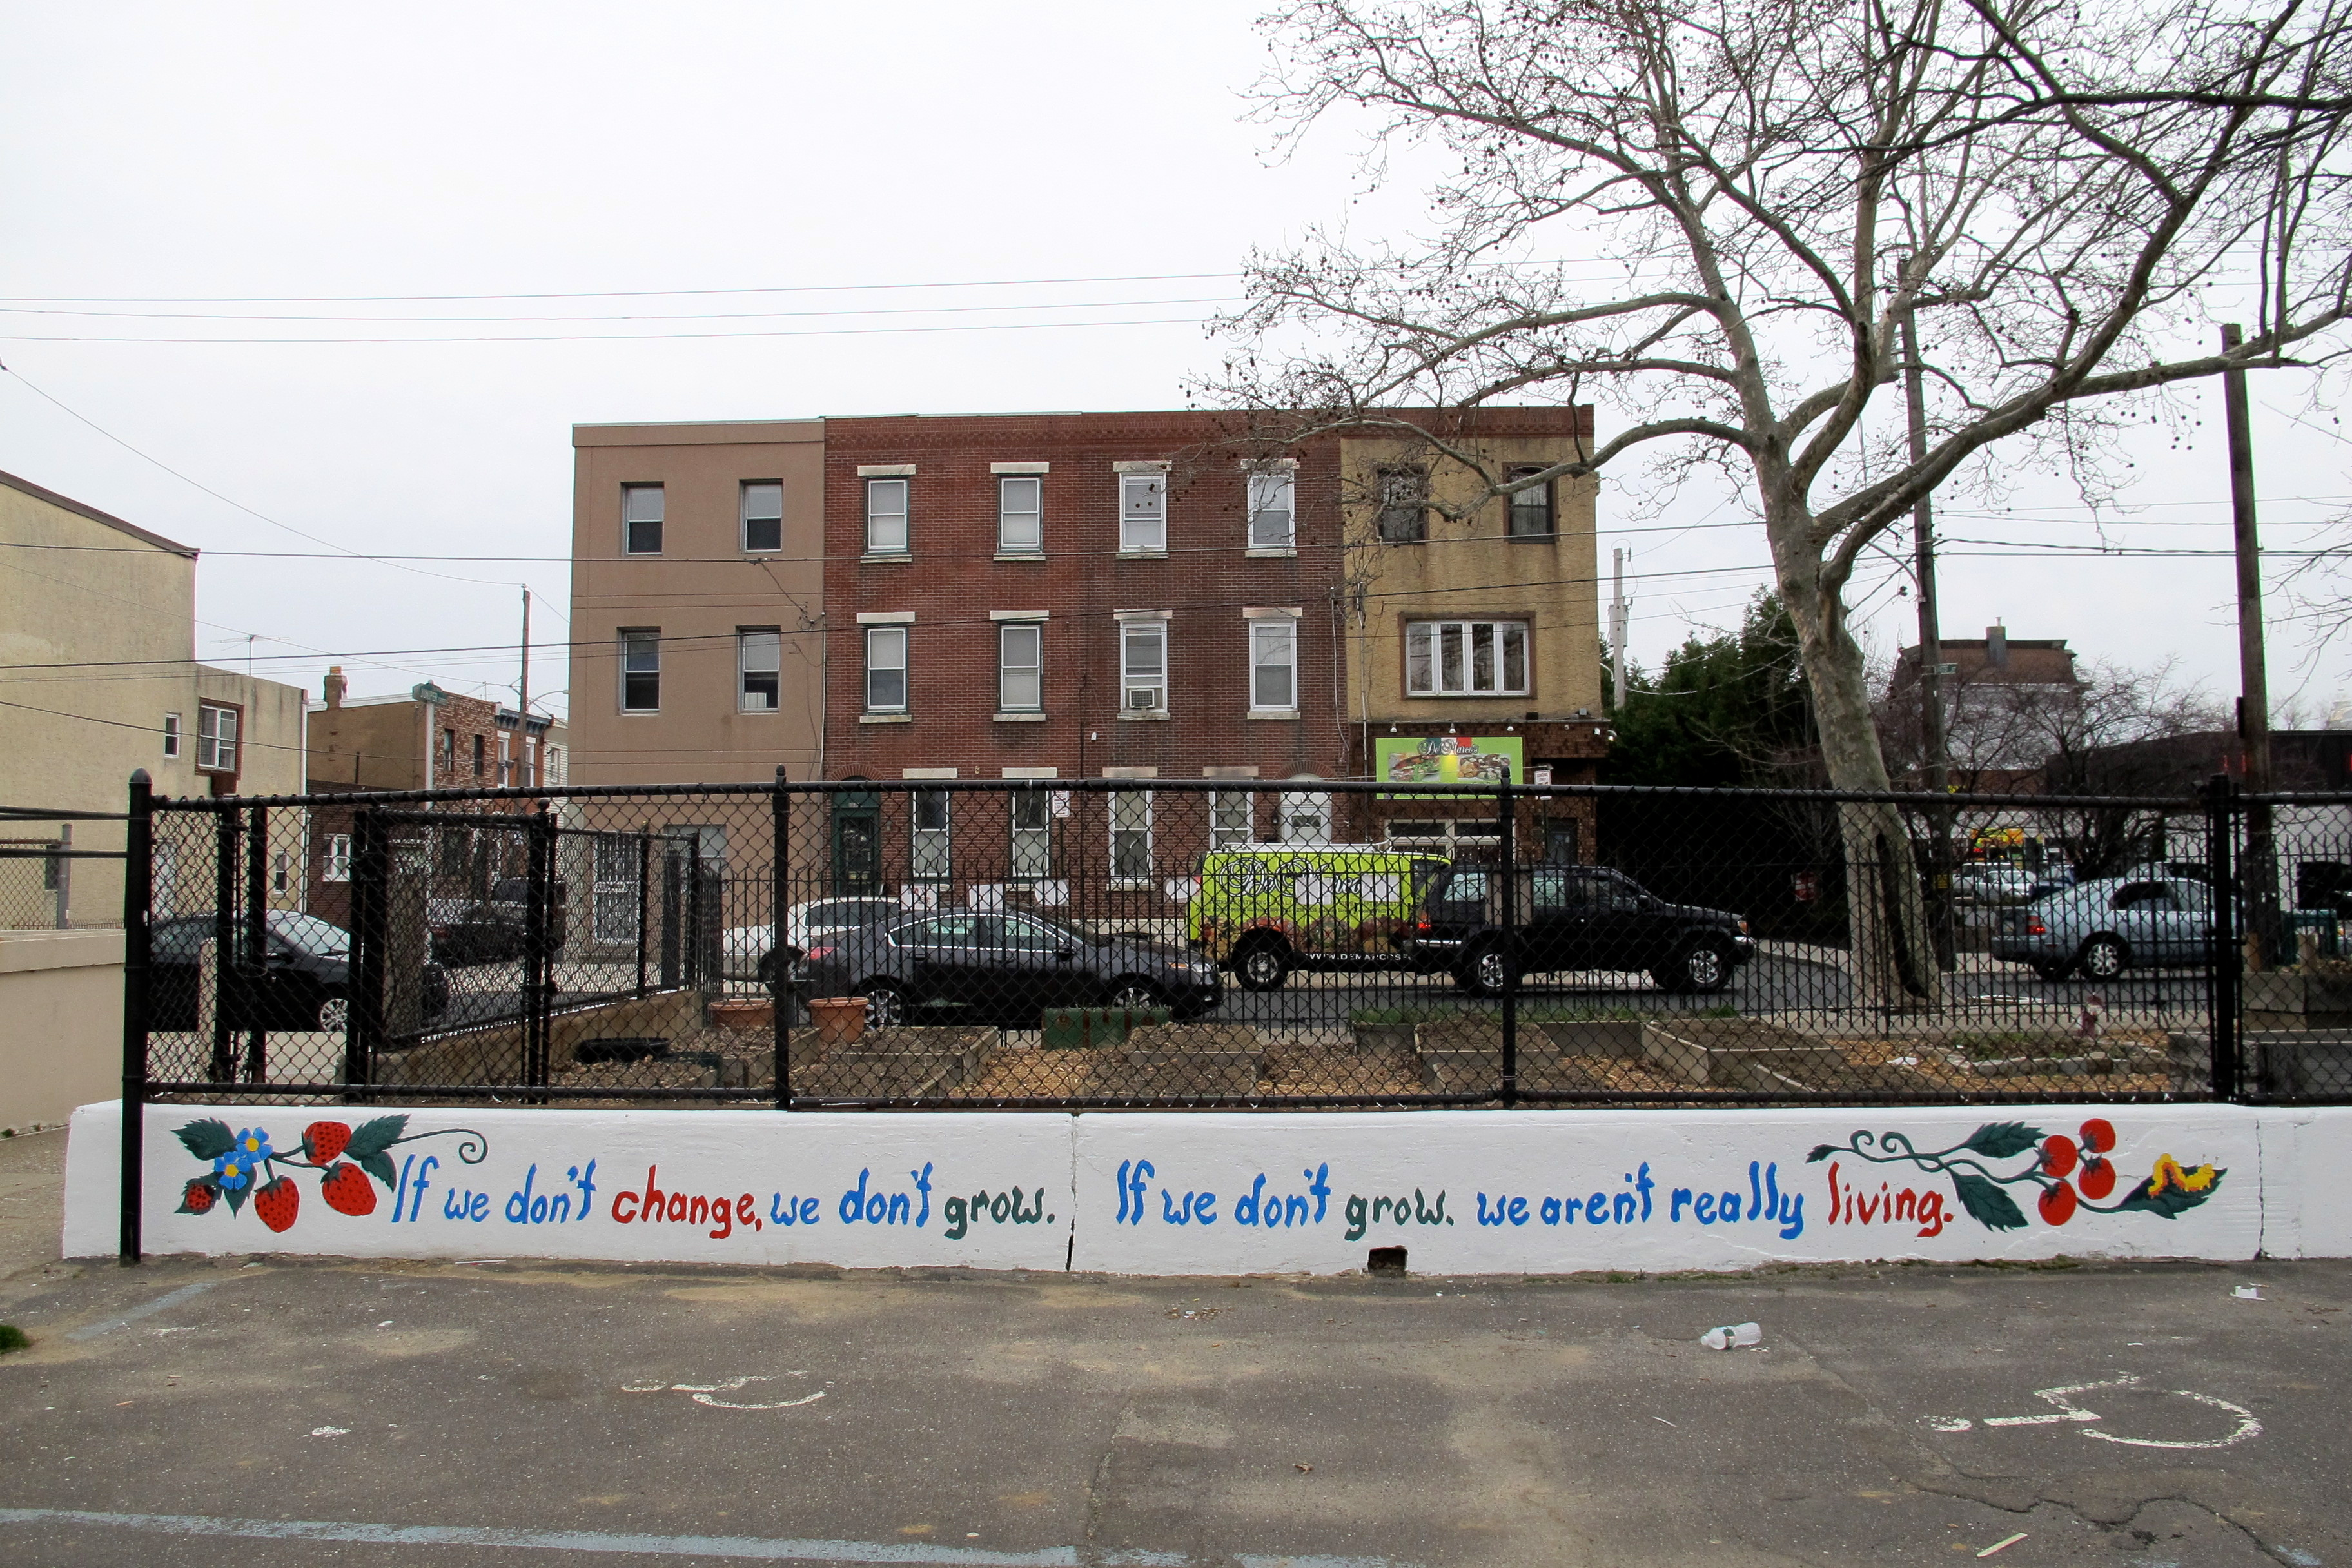 This garden wall was painted by City Year volunteers during spring break.